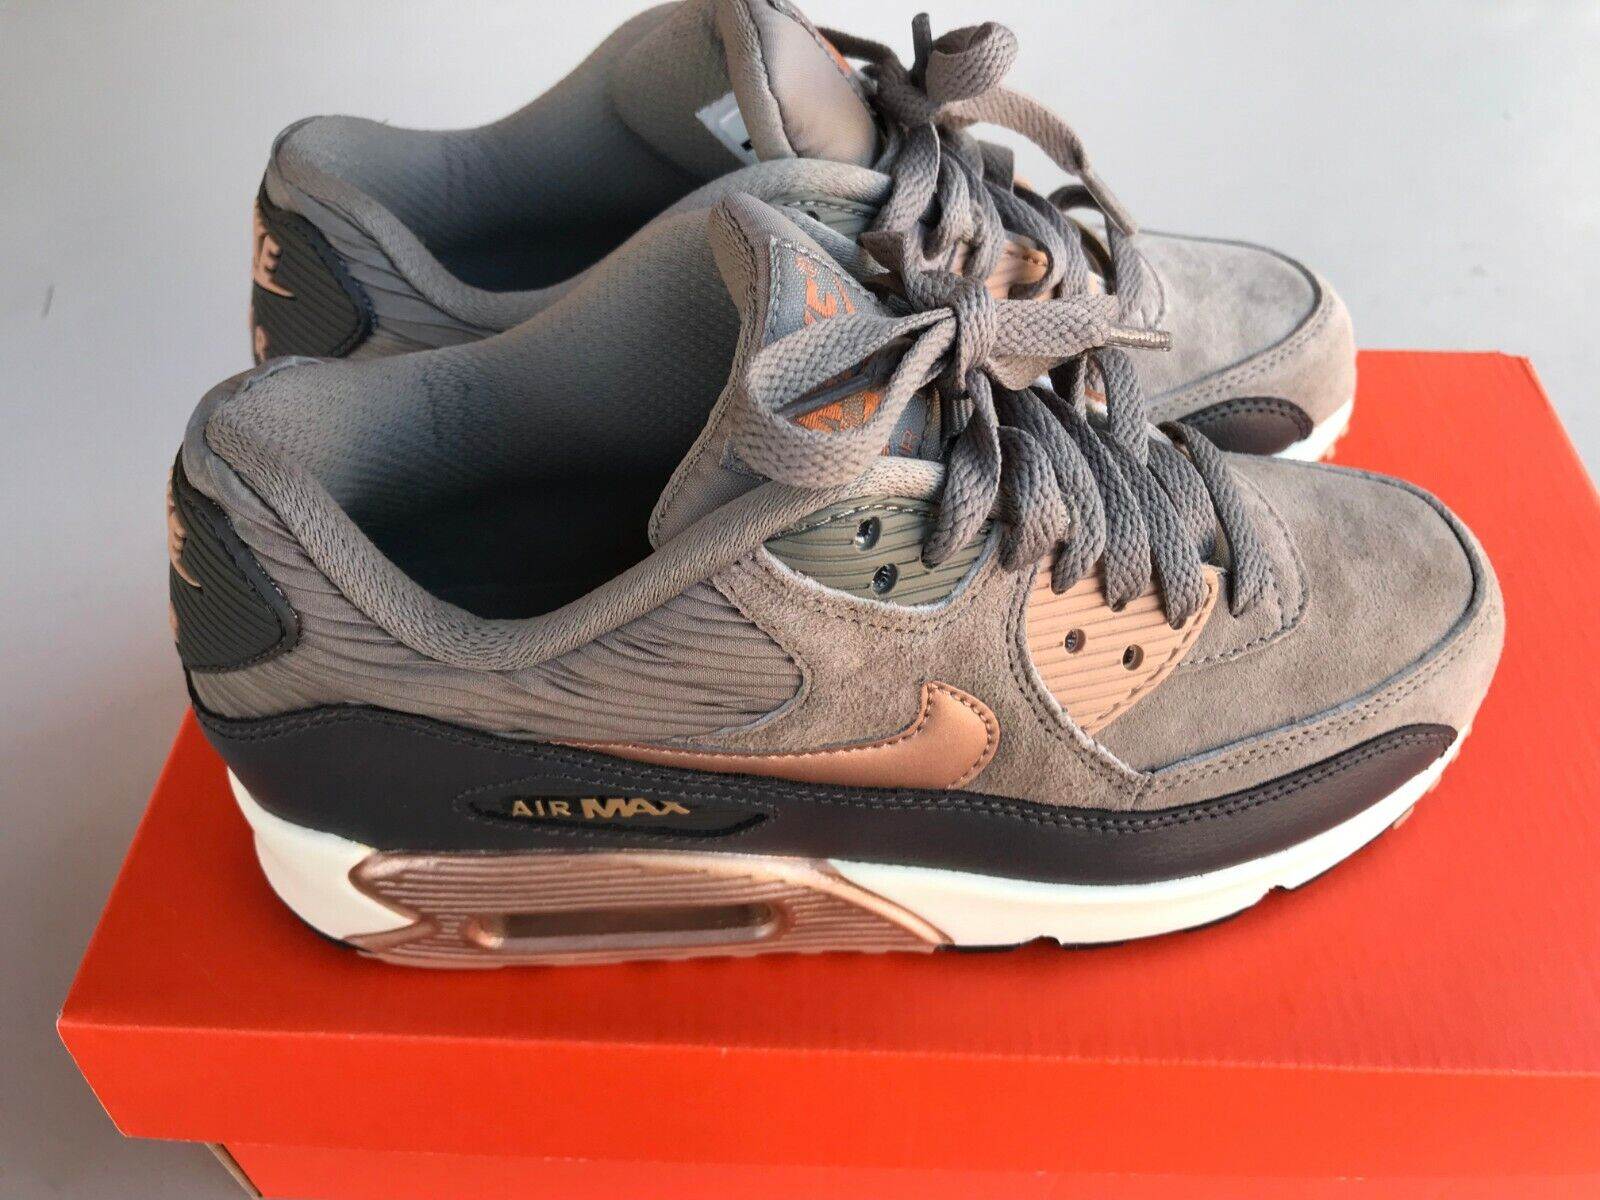 NIB Authentic Women's Nike Air Max -Size 6.5